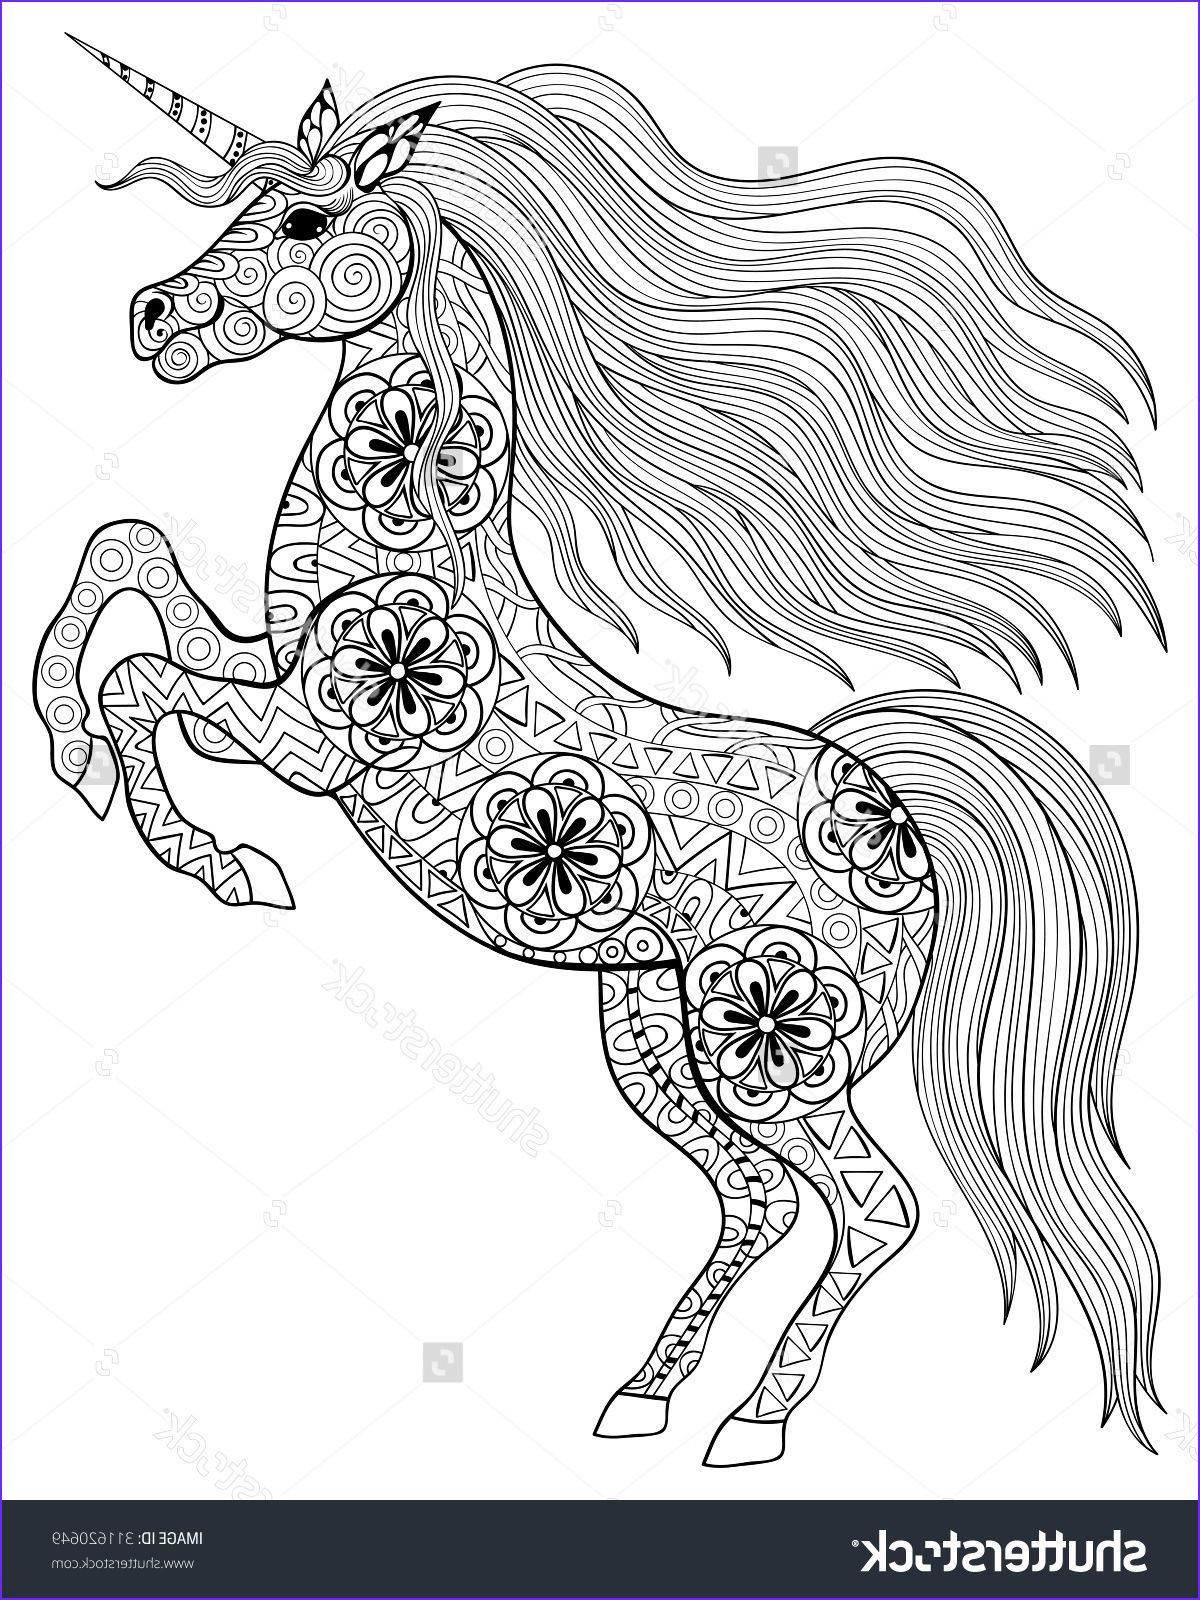 Pin By Ulrica Flodin On 1a D Z Animals Unicorn Coloring Pages Unicorn Pictures To Color Coloring Pages